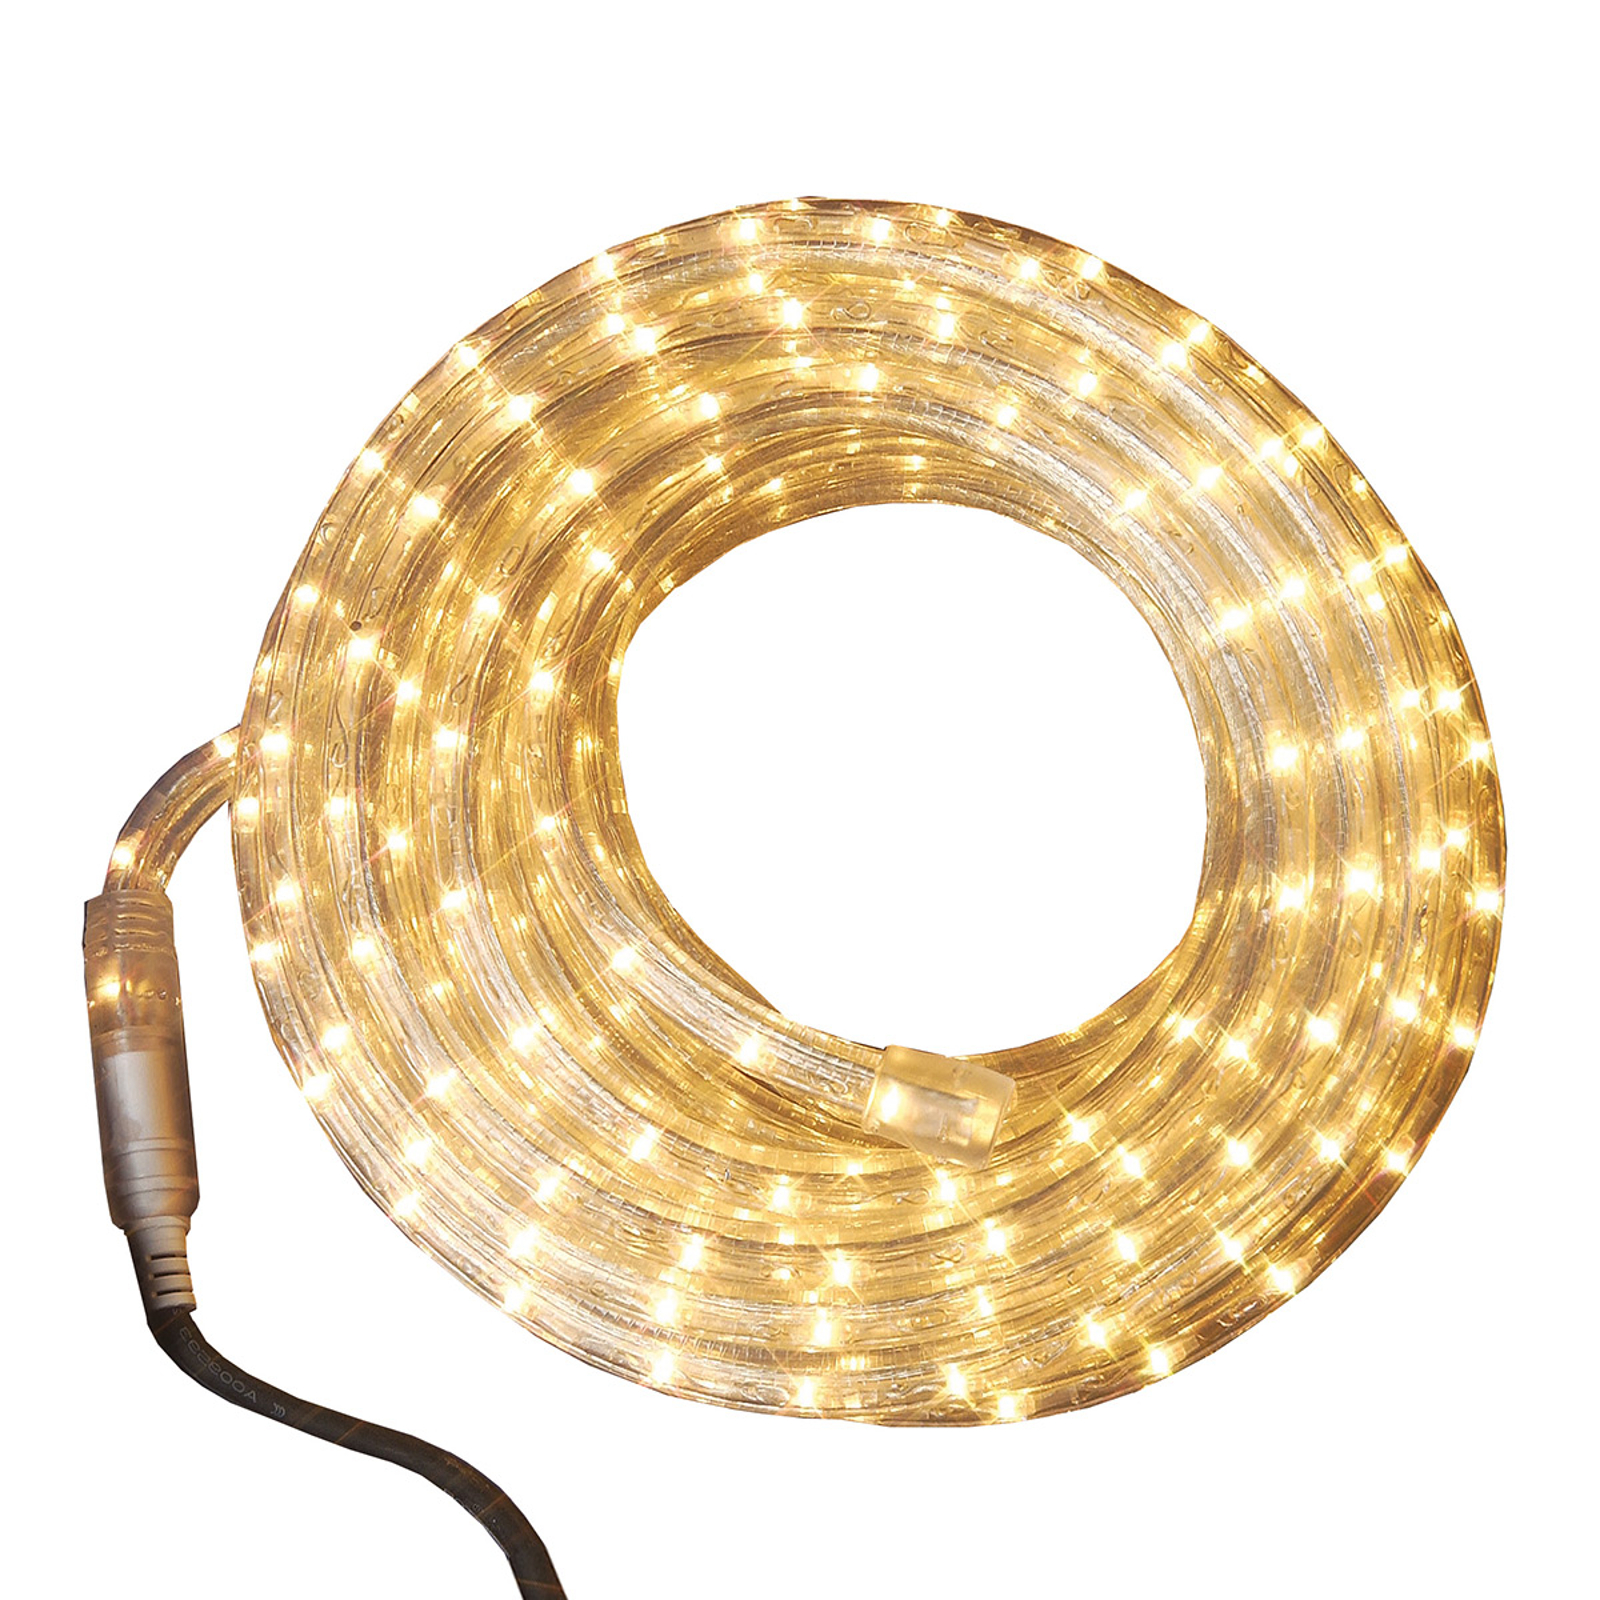 Tube lumineux Ropelight 6 m transparent